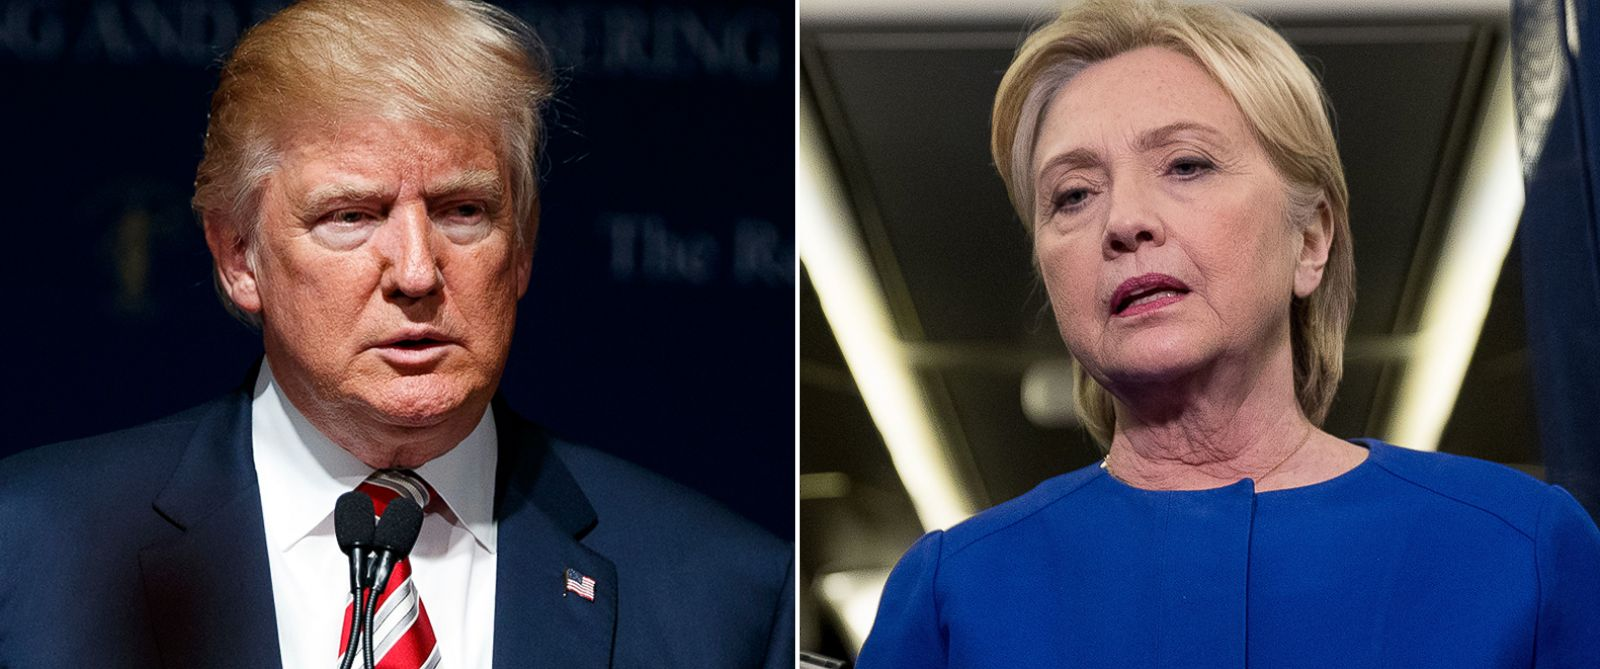 PHOTO: (L-R) Pictured on Sept. 17, 2016 are Republican presidential candidate Donald Trump in Houston and Democratic presidential candidate Hillary Clinton in White Plains, New York.